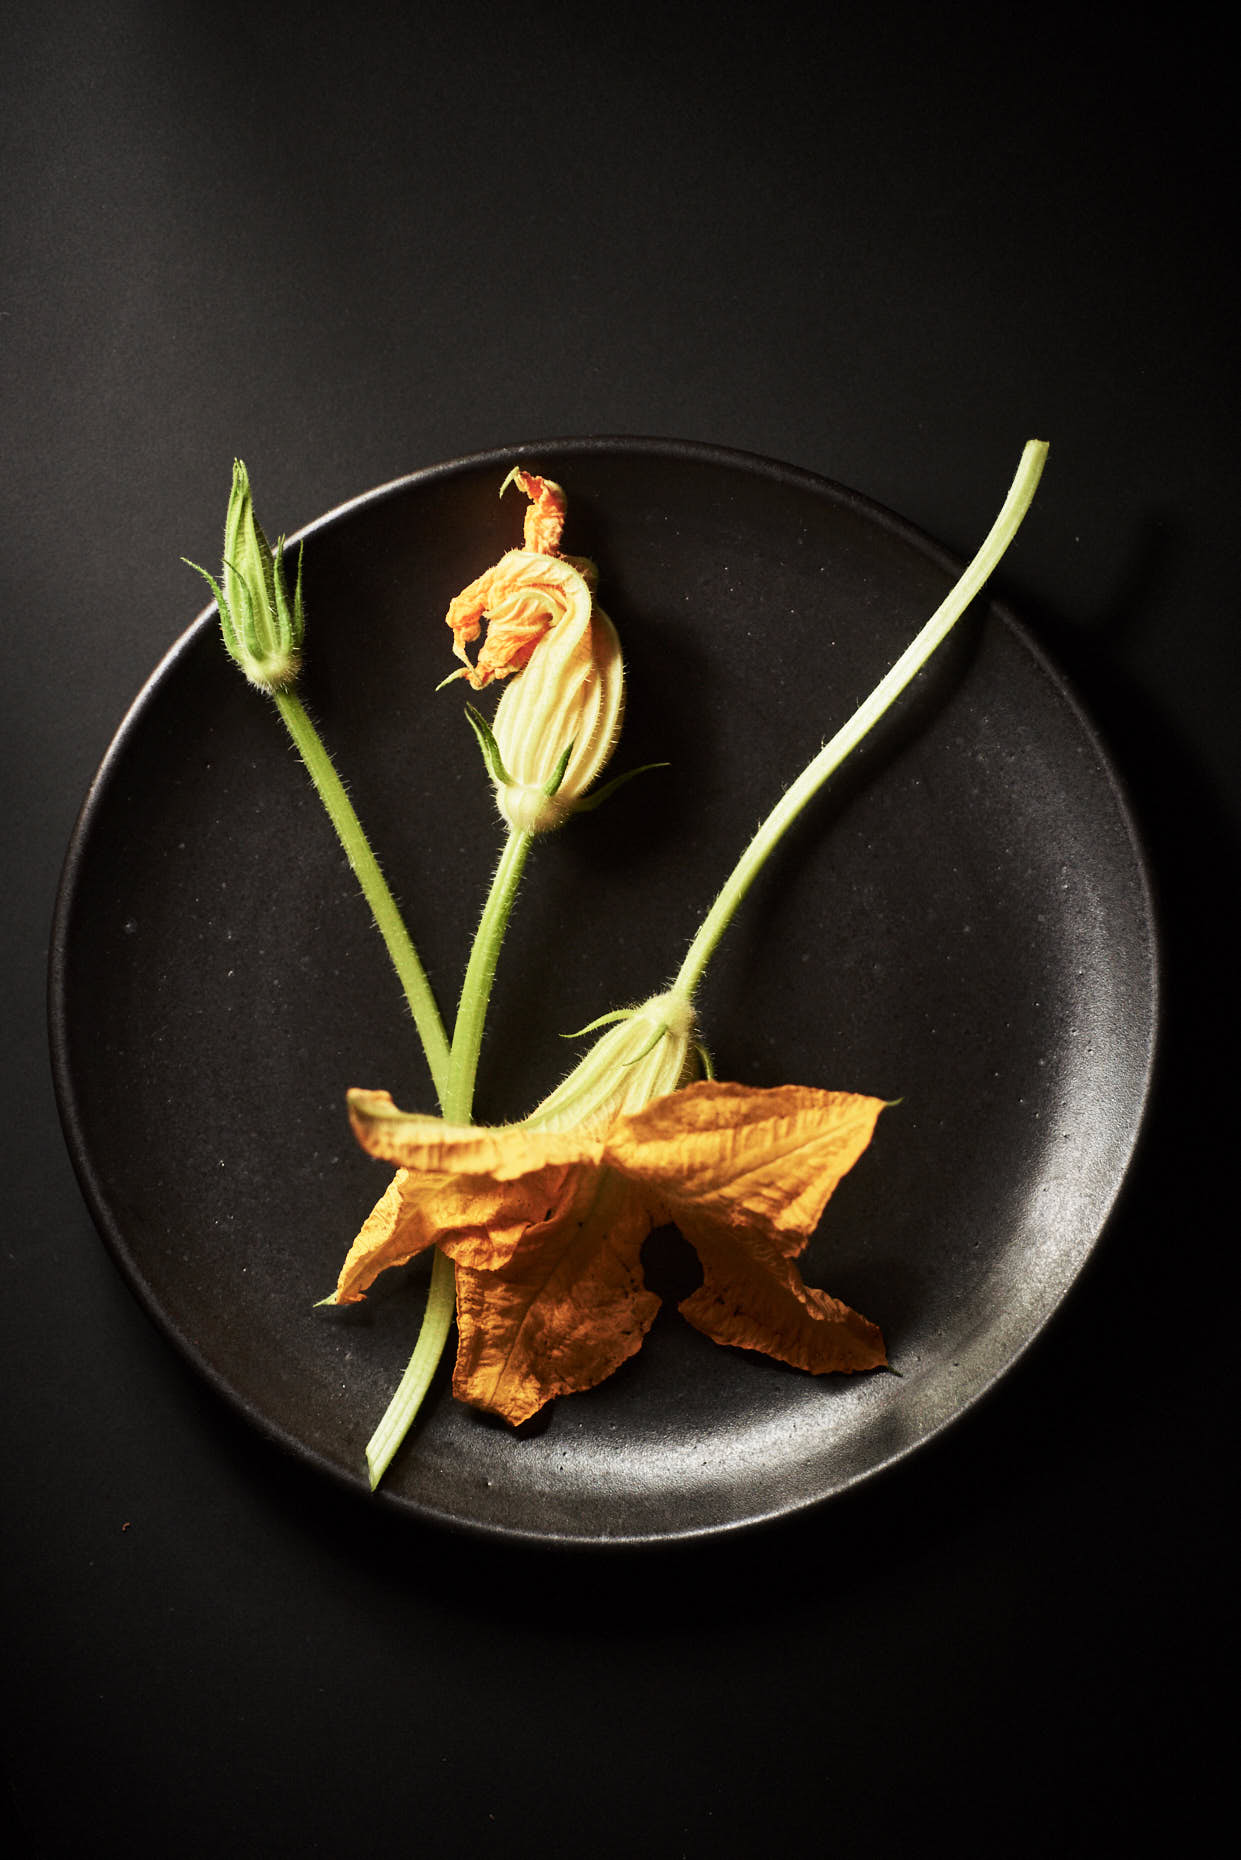 Jennifer-May-NYC-Food-Photographer-squash-blossoms